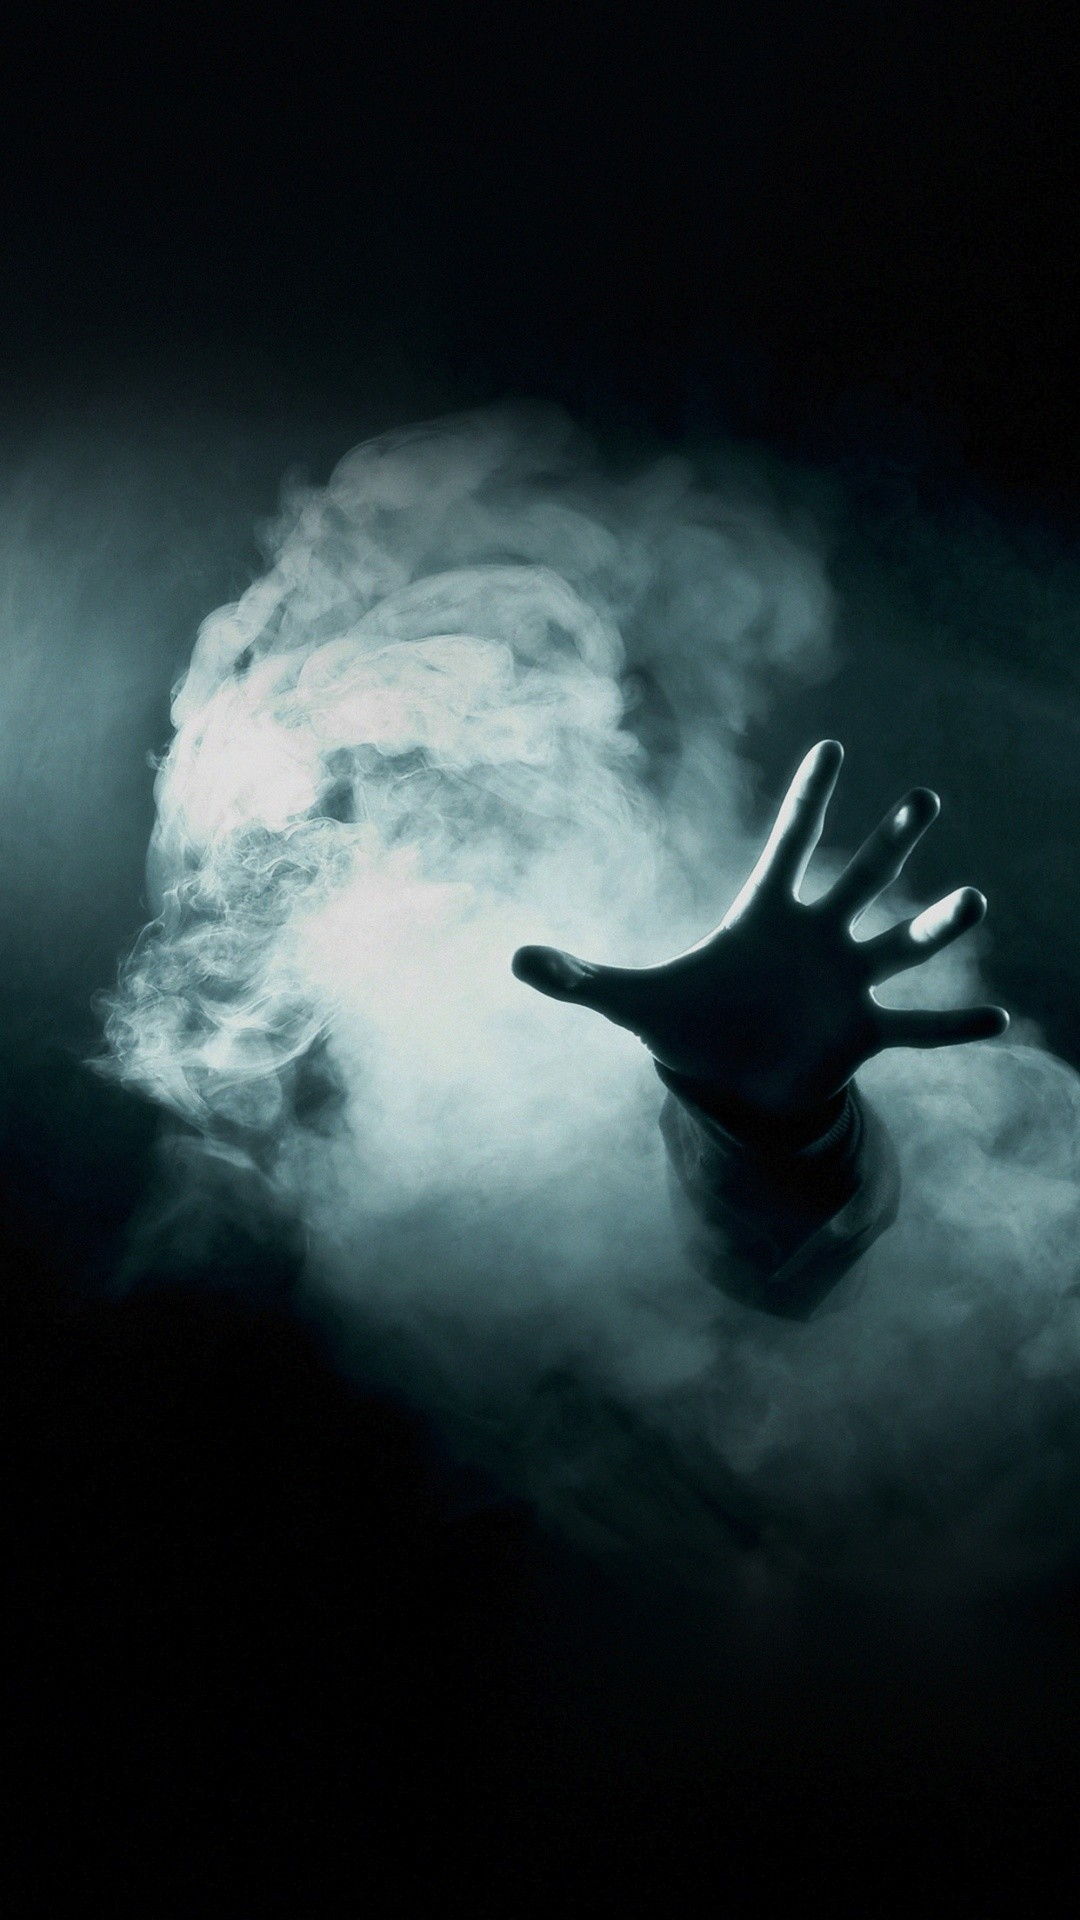 Hand Reaching Out From Smoke Horror iPhone 6+ HD Wallpaper …